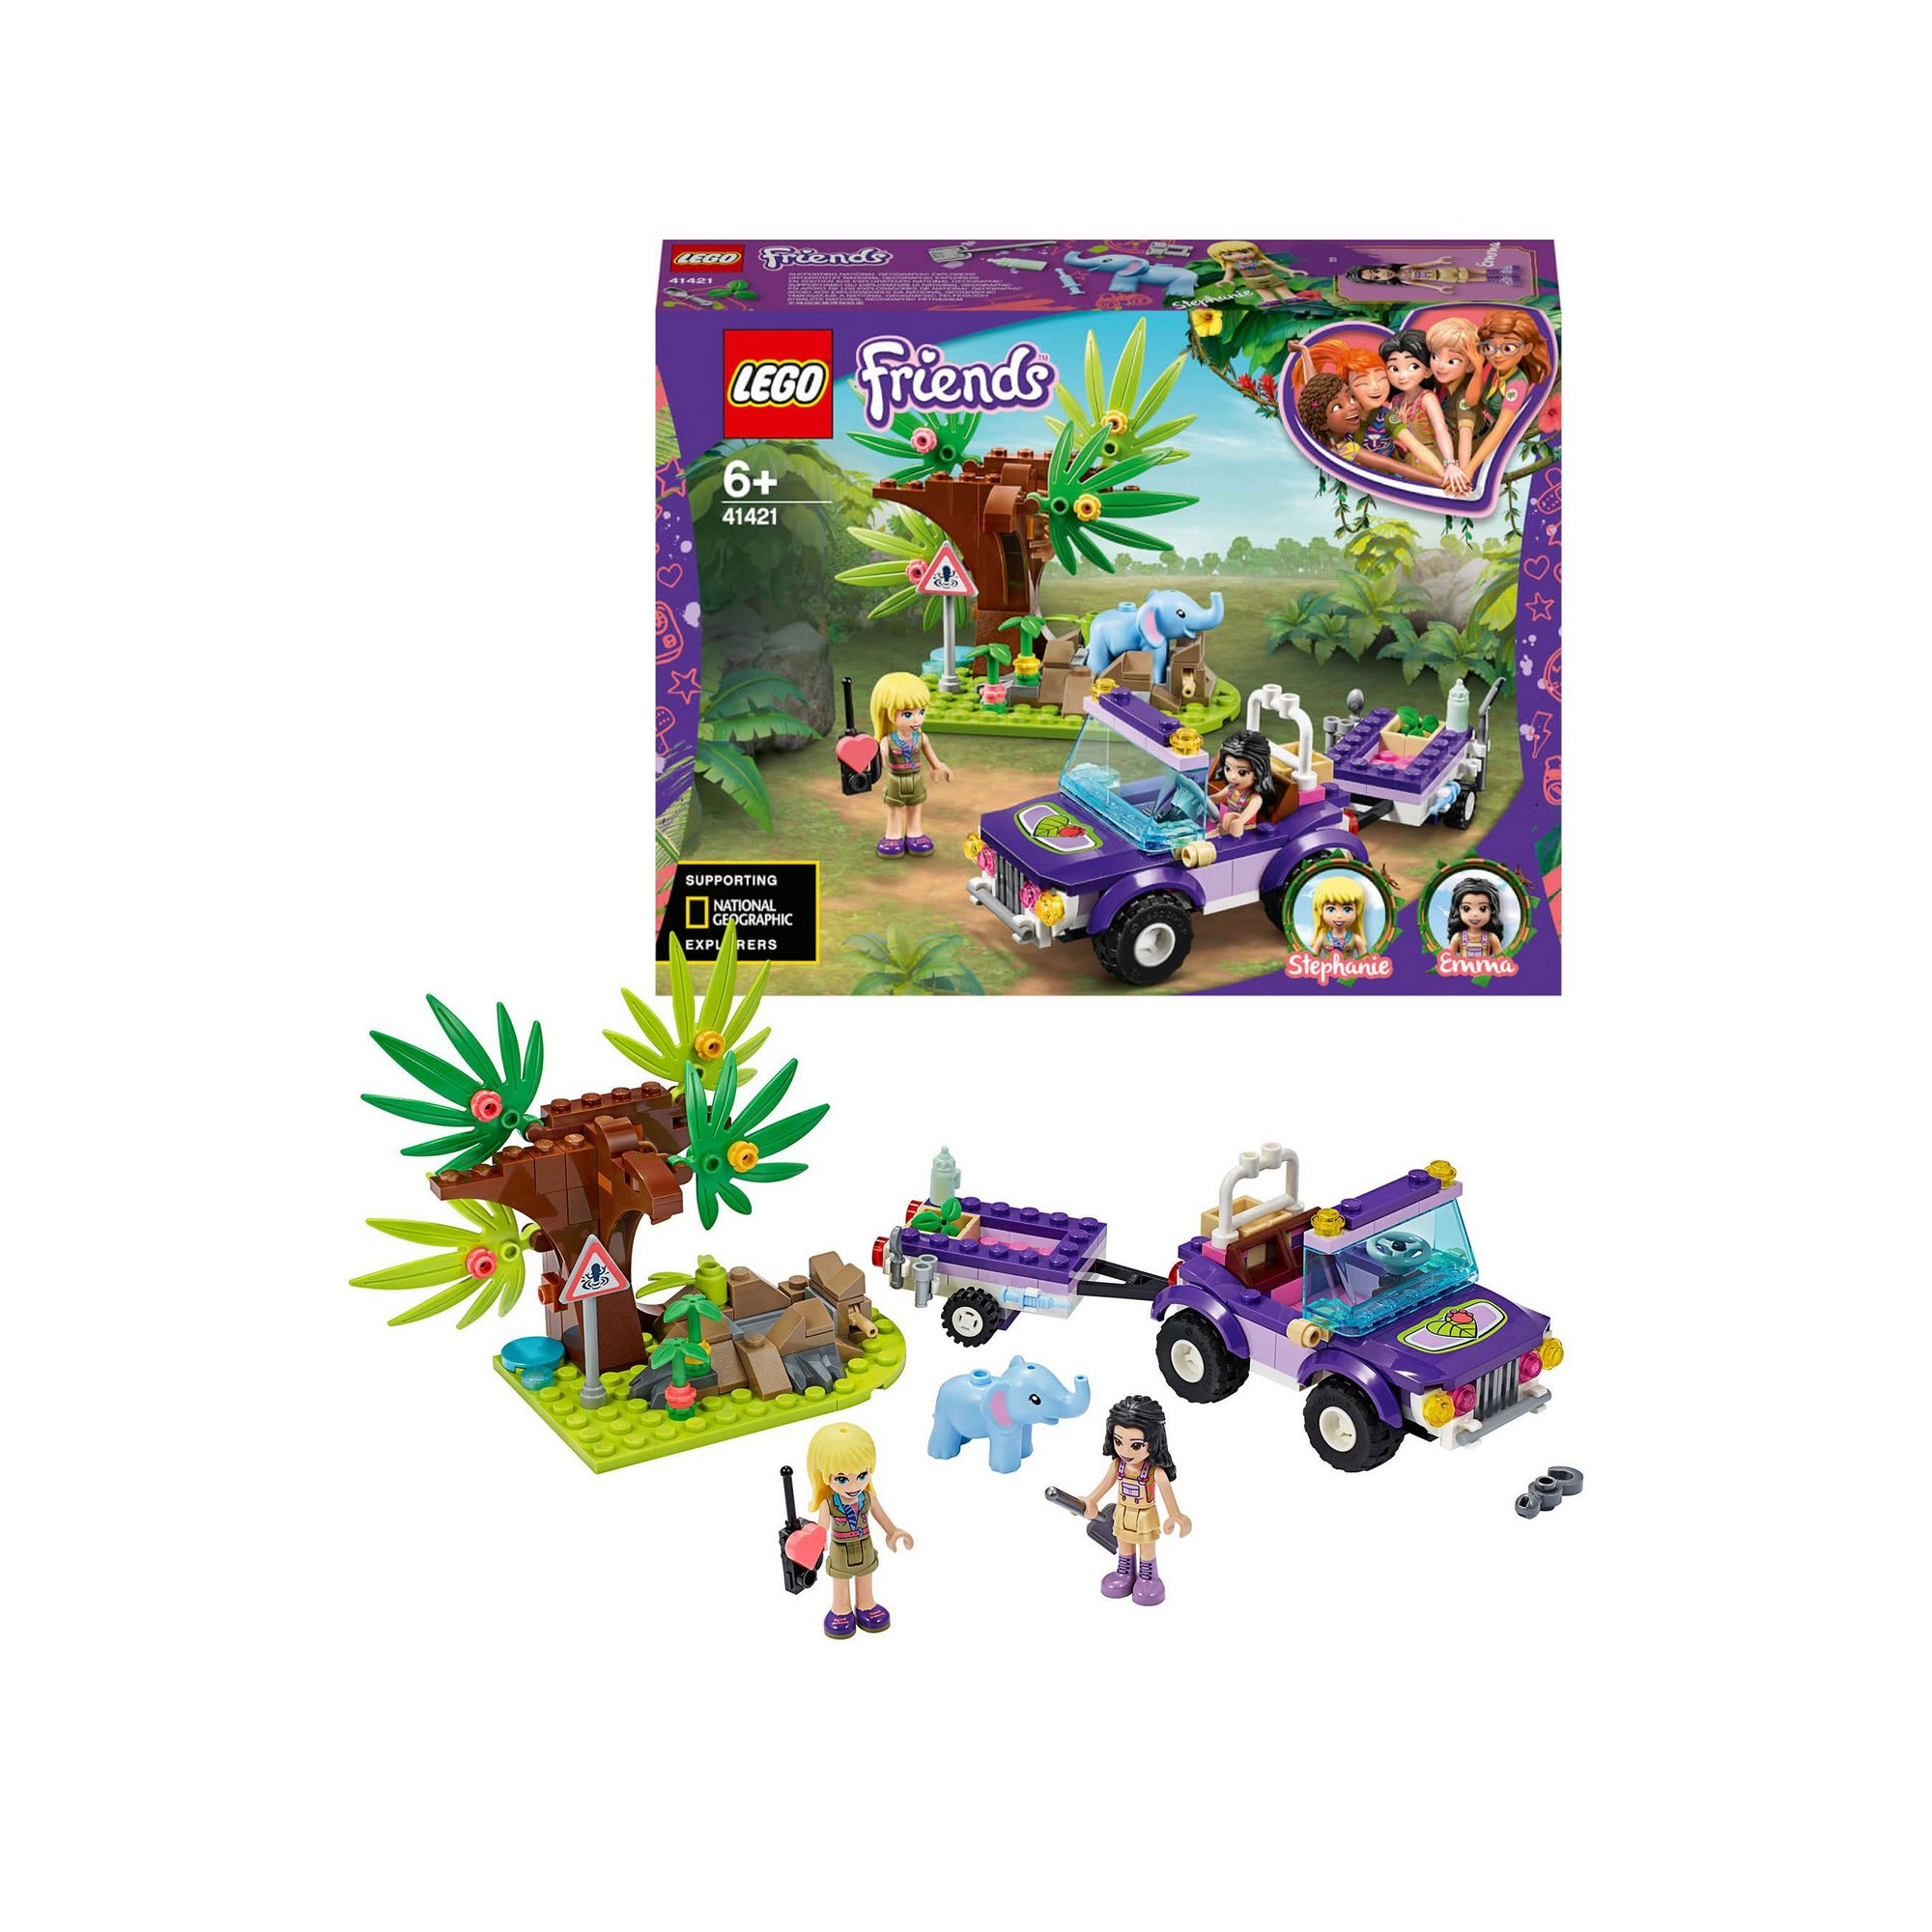 Image of LEGO Friends Baby Elephant Jungle Rescue